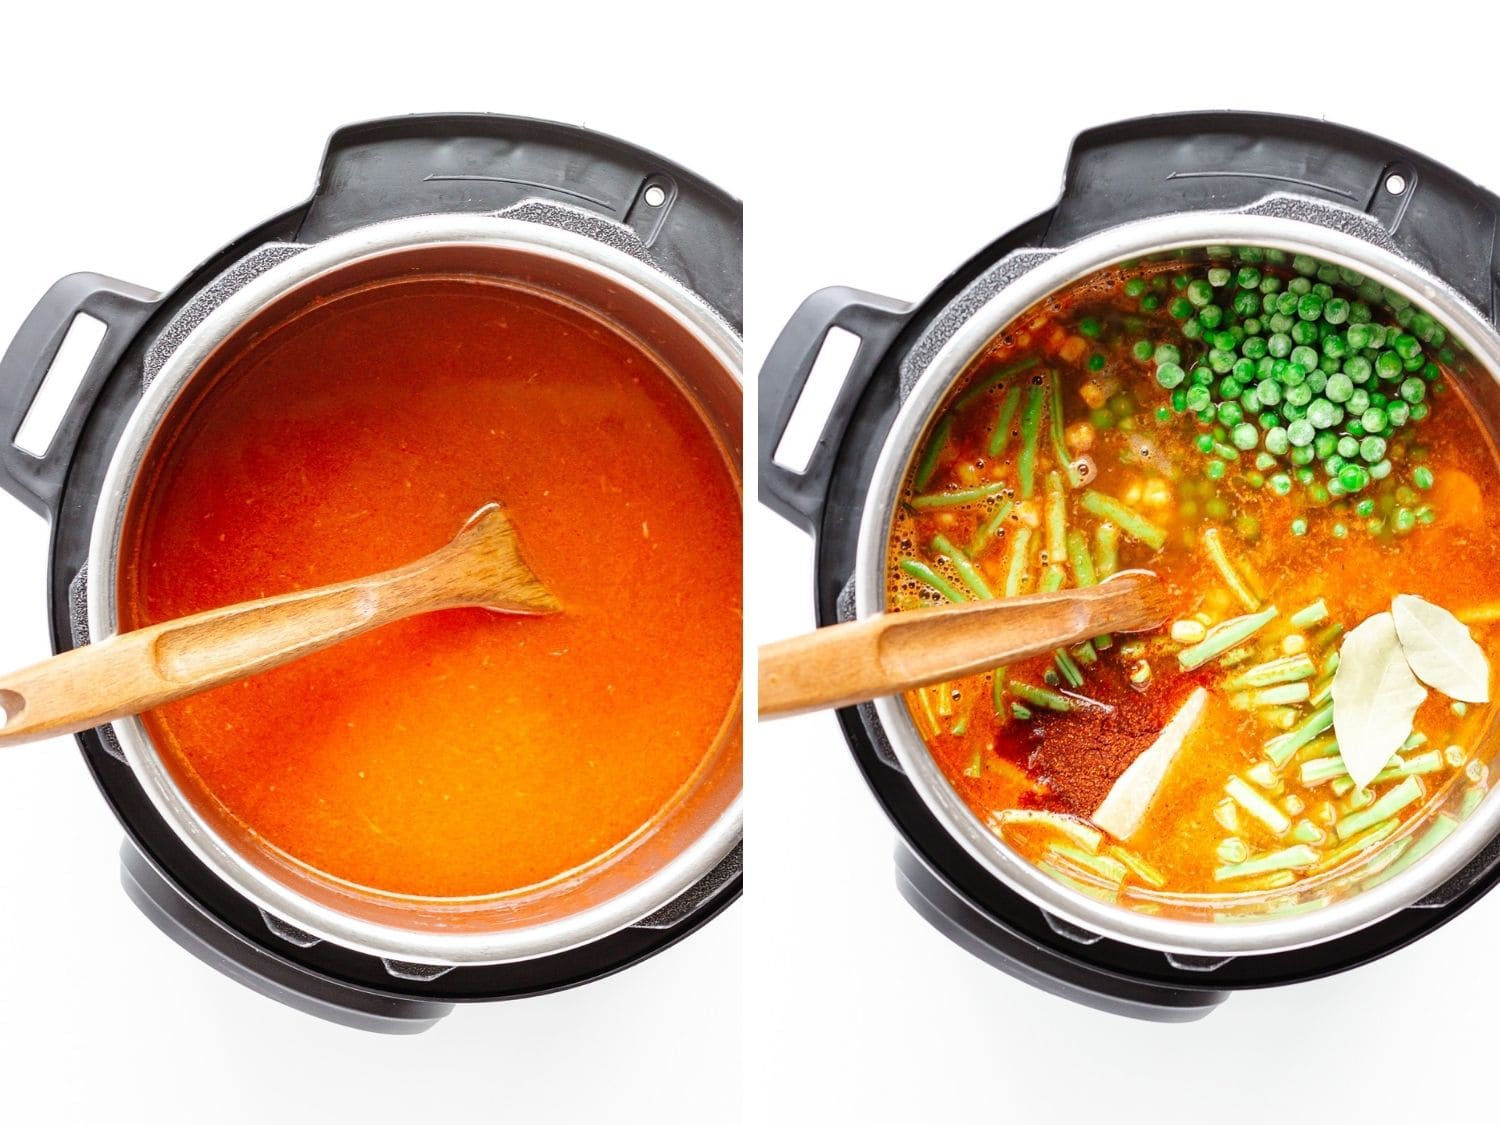 Photo collage showing ingredients being added to the Instant Pot for vegetable soup.